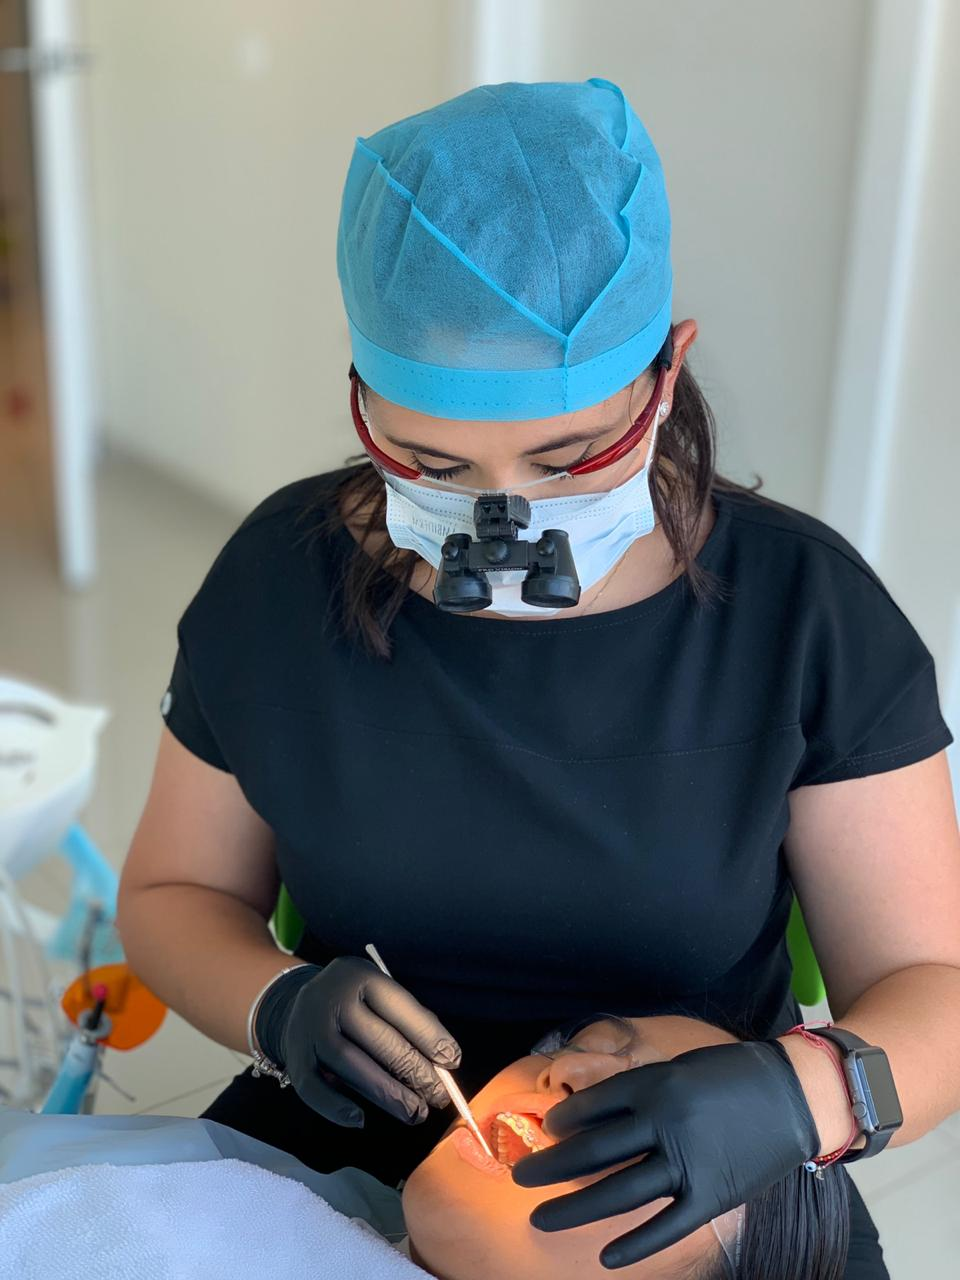 Dr. Lorena Izabal taking care of a patient. Root Canal treatment in Tijuana